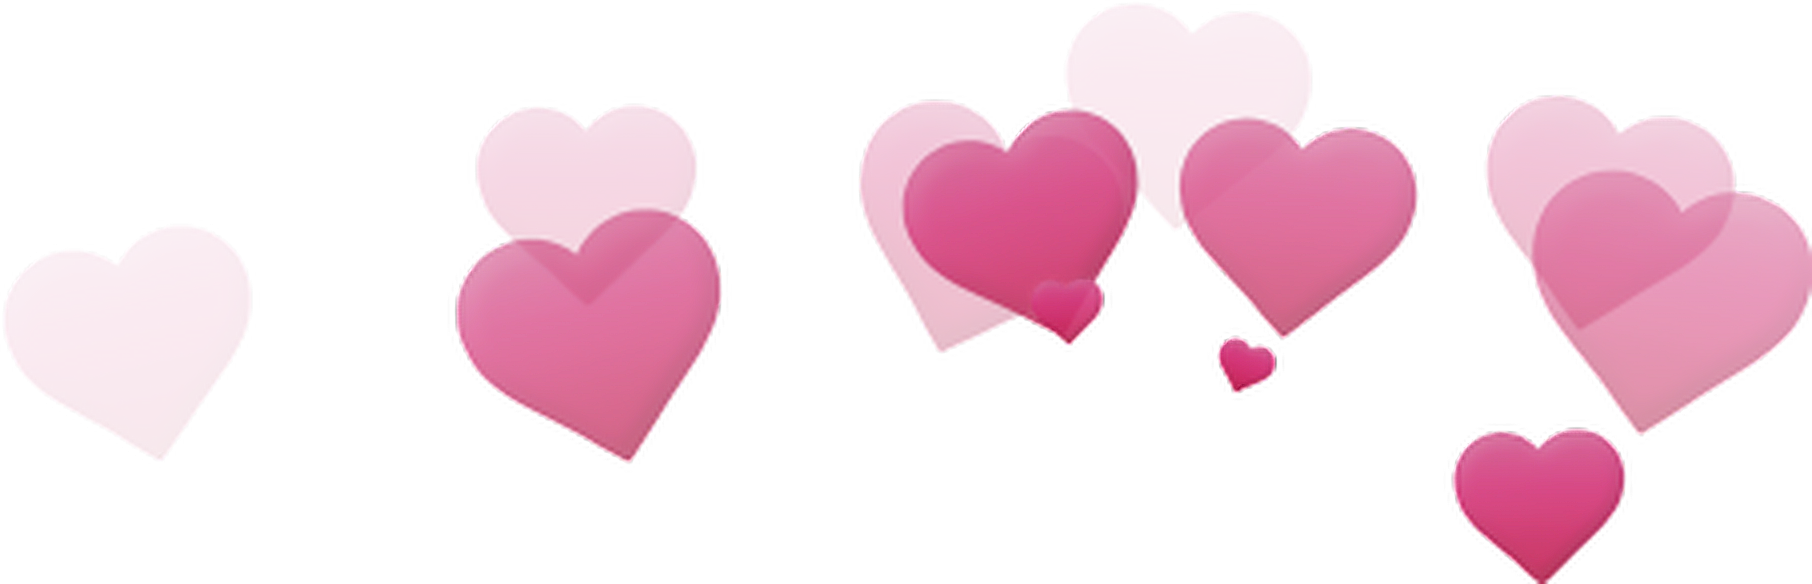 Tumblr pink filter heartseffect. Photobooth hearts png